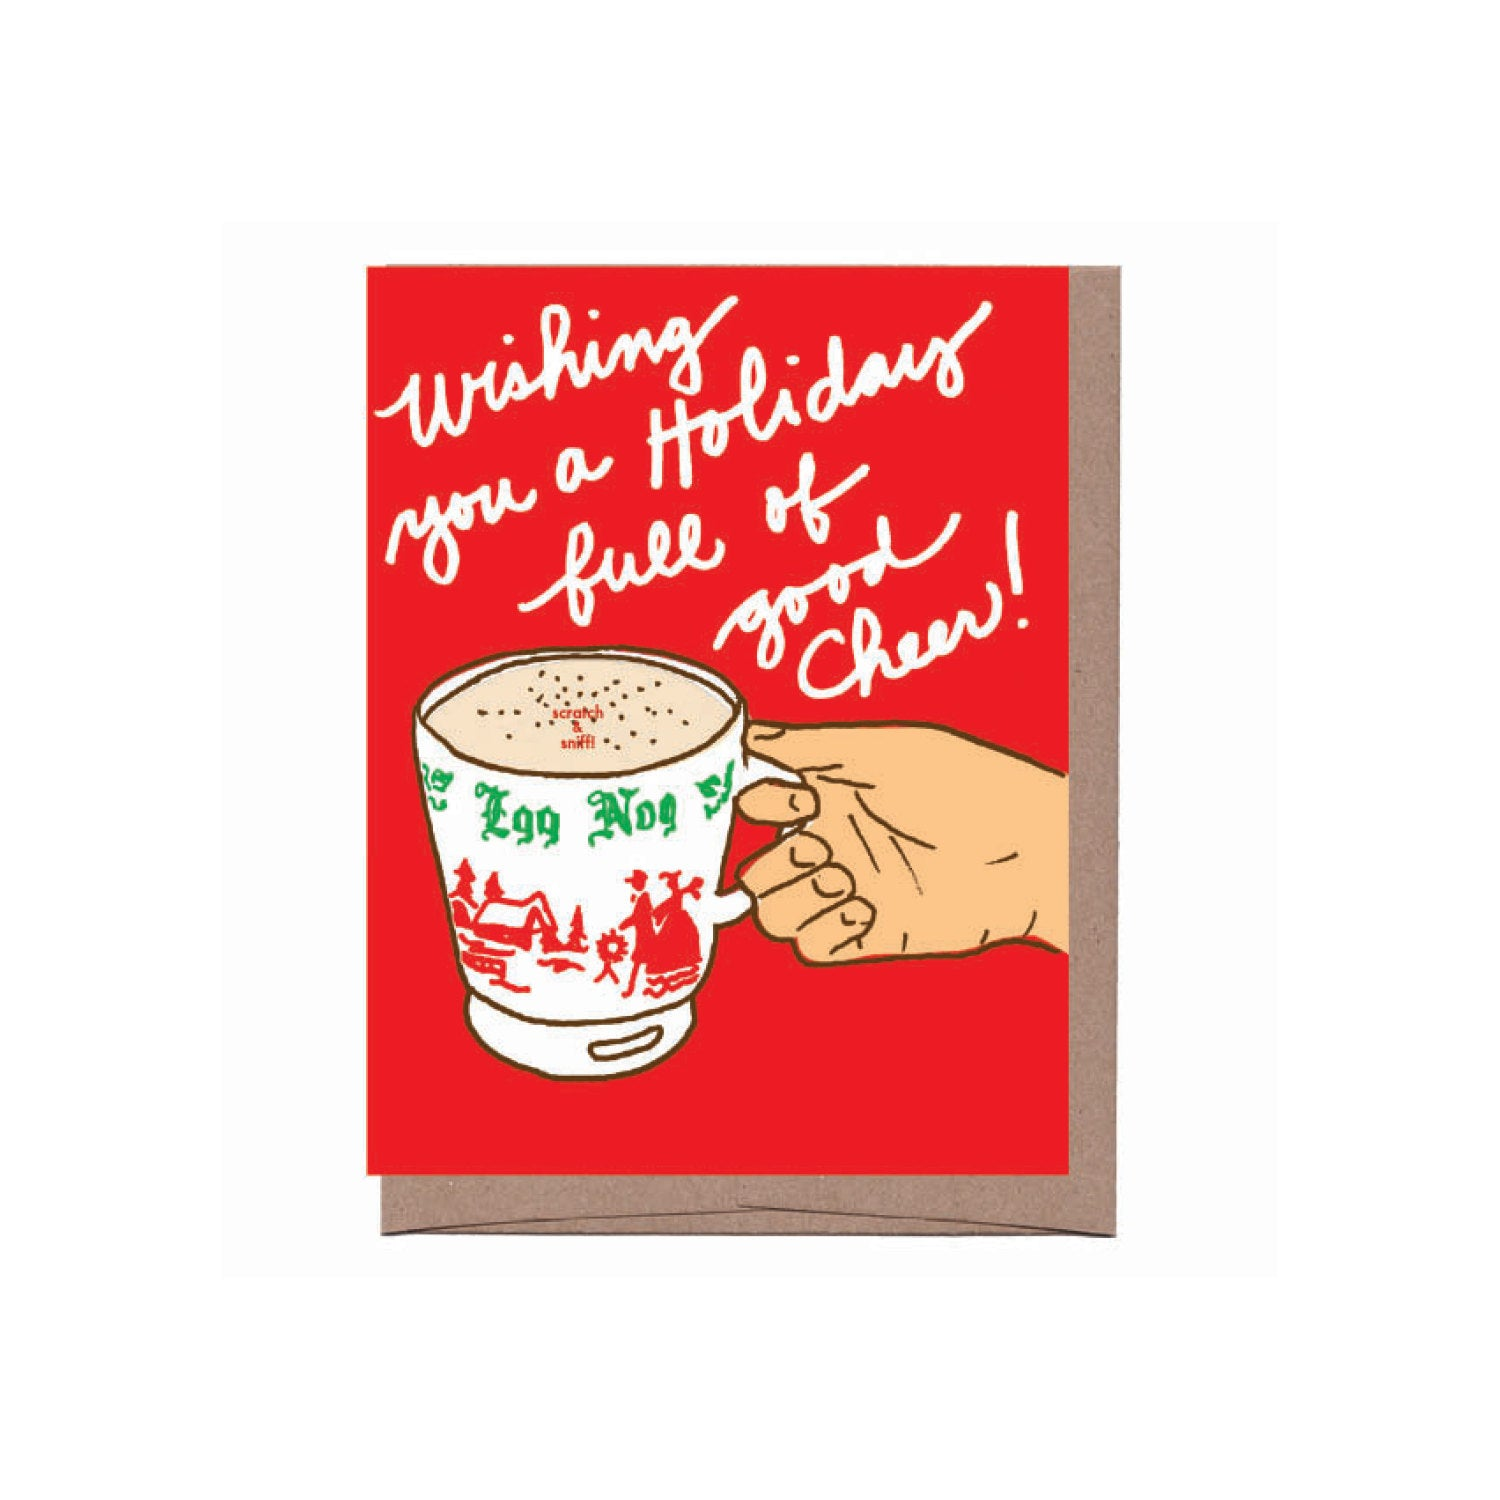 red background hand holding holiday mug scratch and sniff egg nog scent- text reads wishing you a holiday full of good cheer!